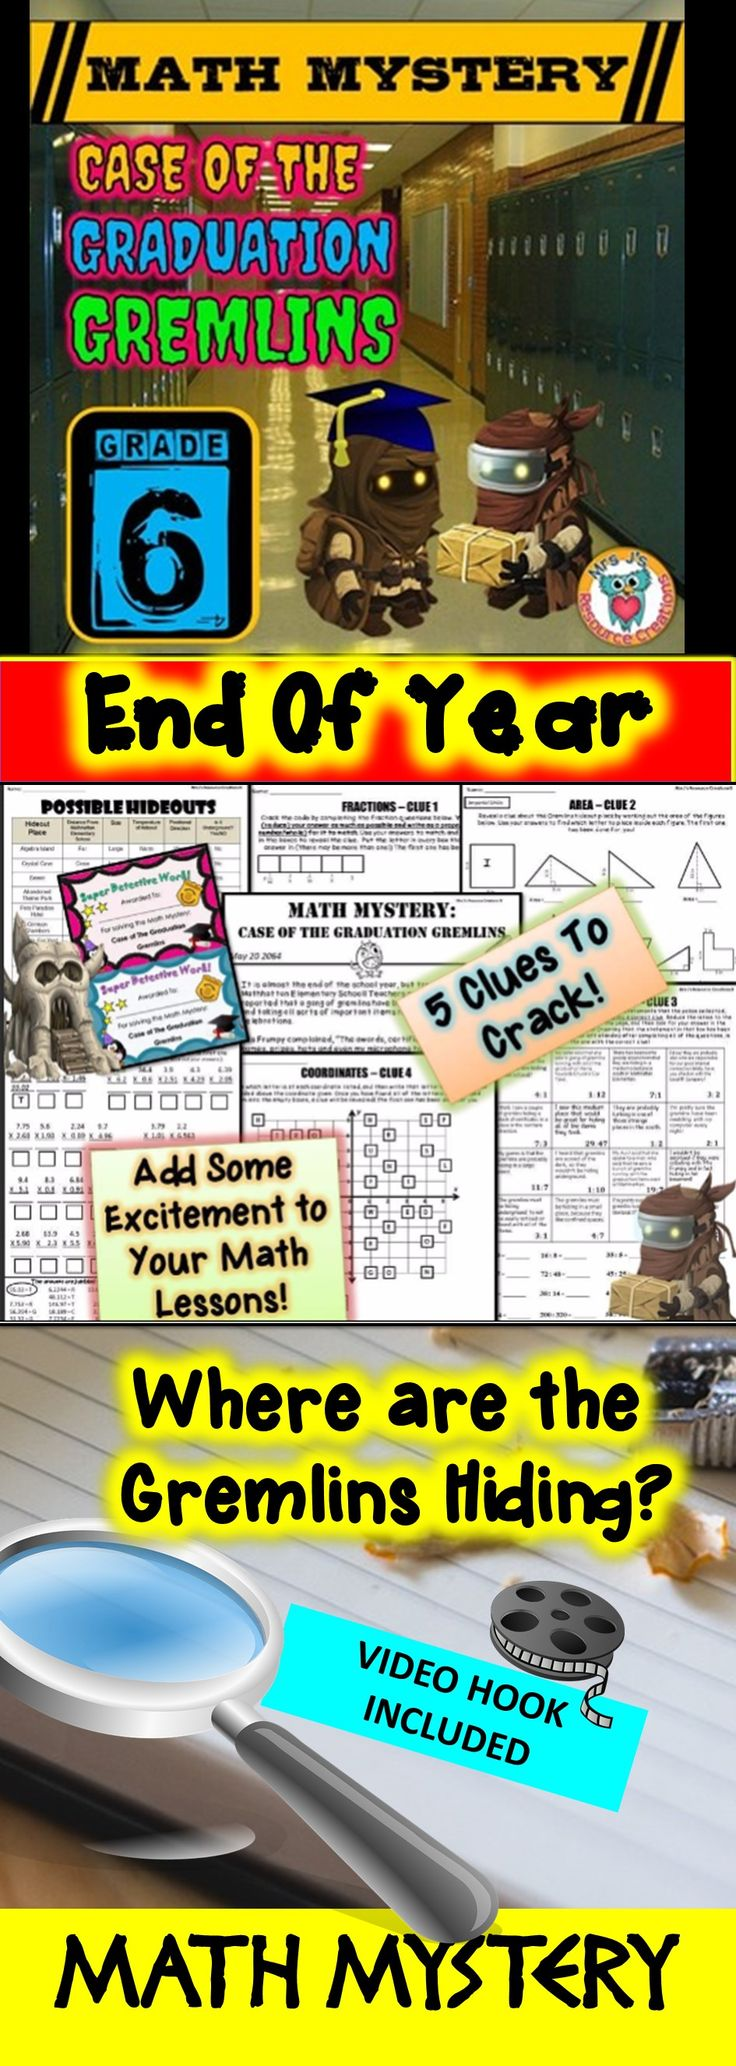 End of Year Math Mystery: Case of The Graduation Gremlins - Sixth Grade Version. Fun math review activity!